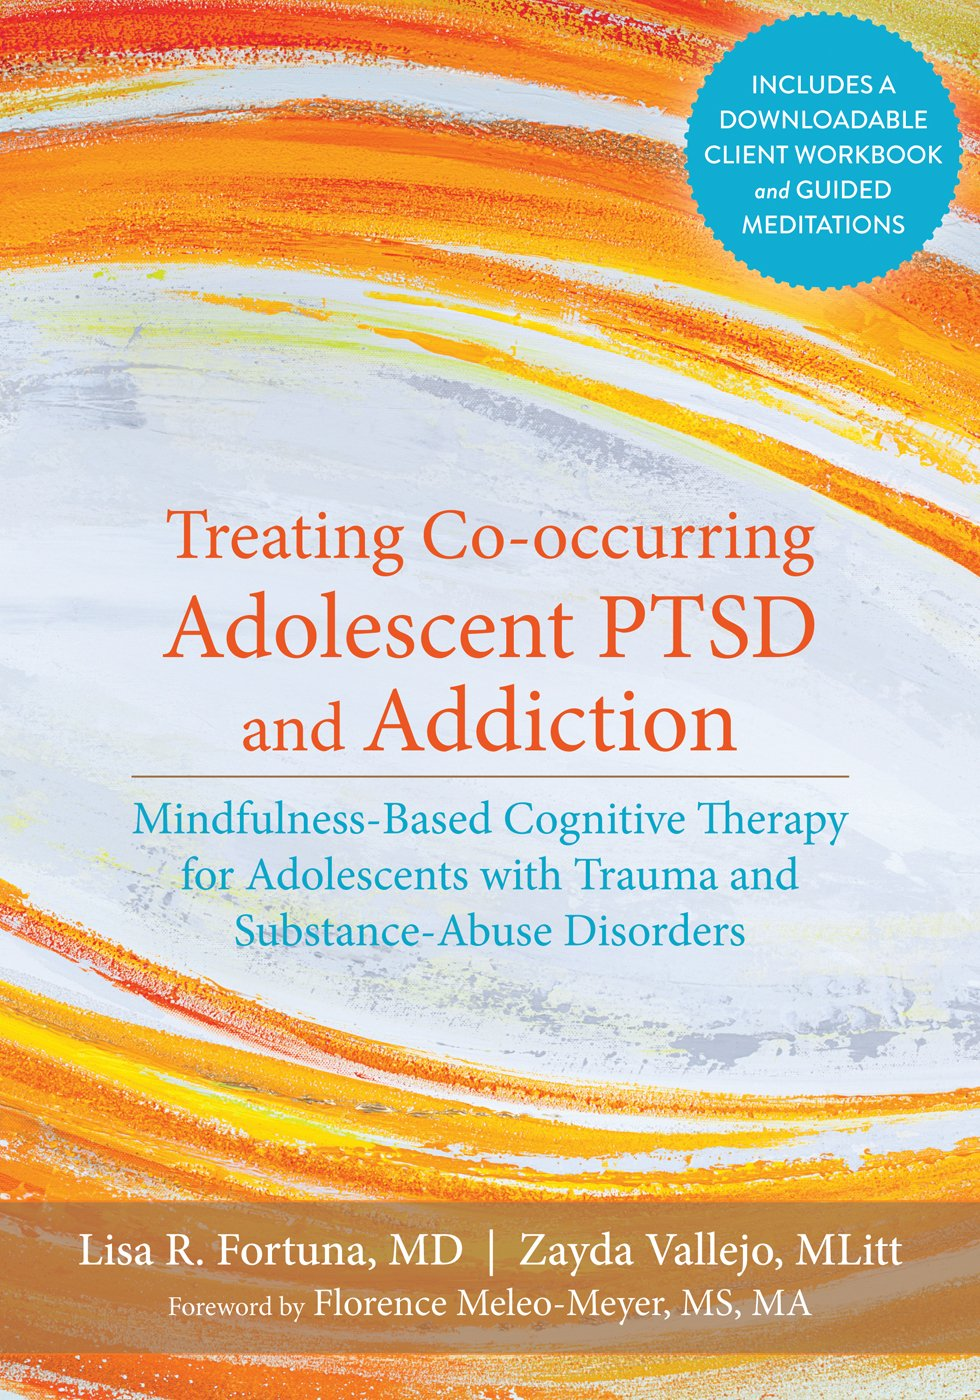 Workbooks dual diagnosis workbook free : Treating Co-occurring Adolescent PTSD and Addiction: Mindfulness ...